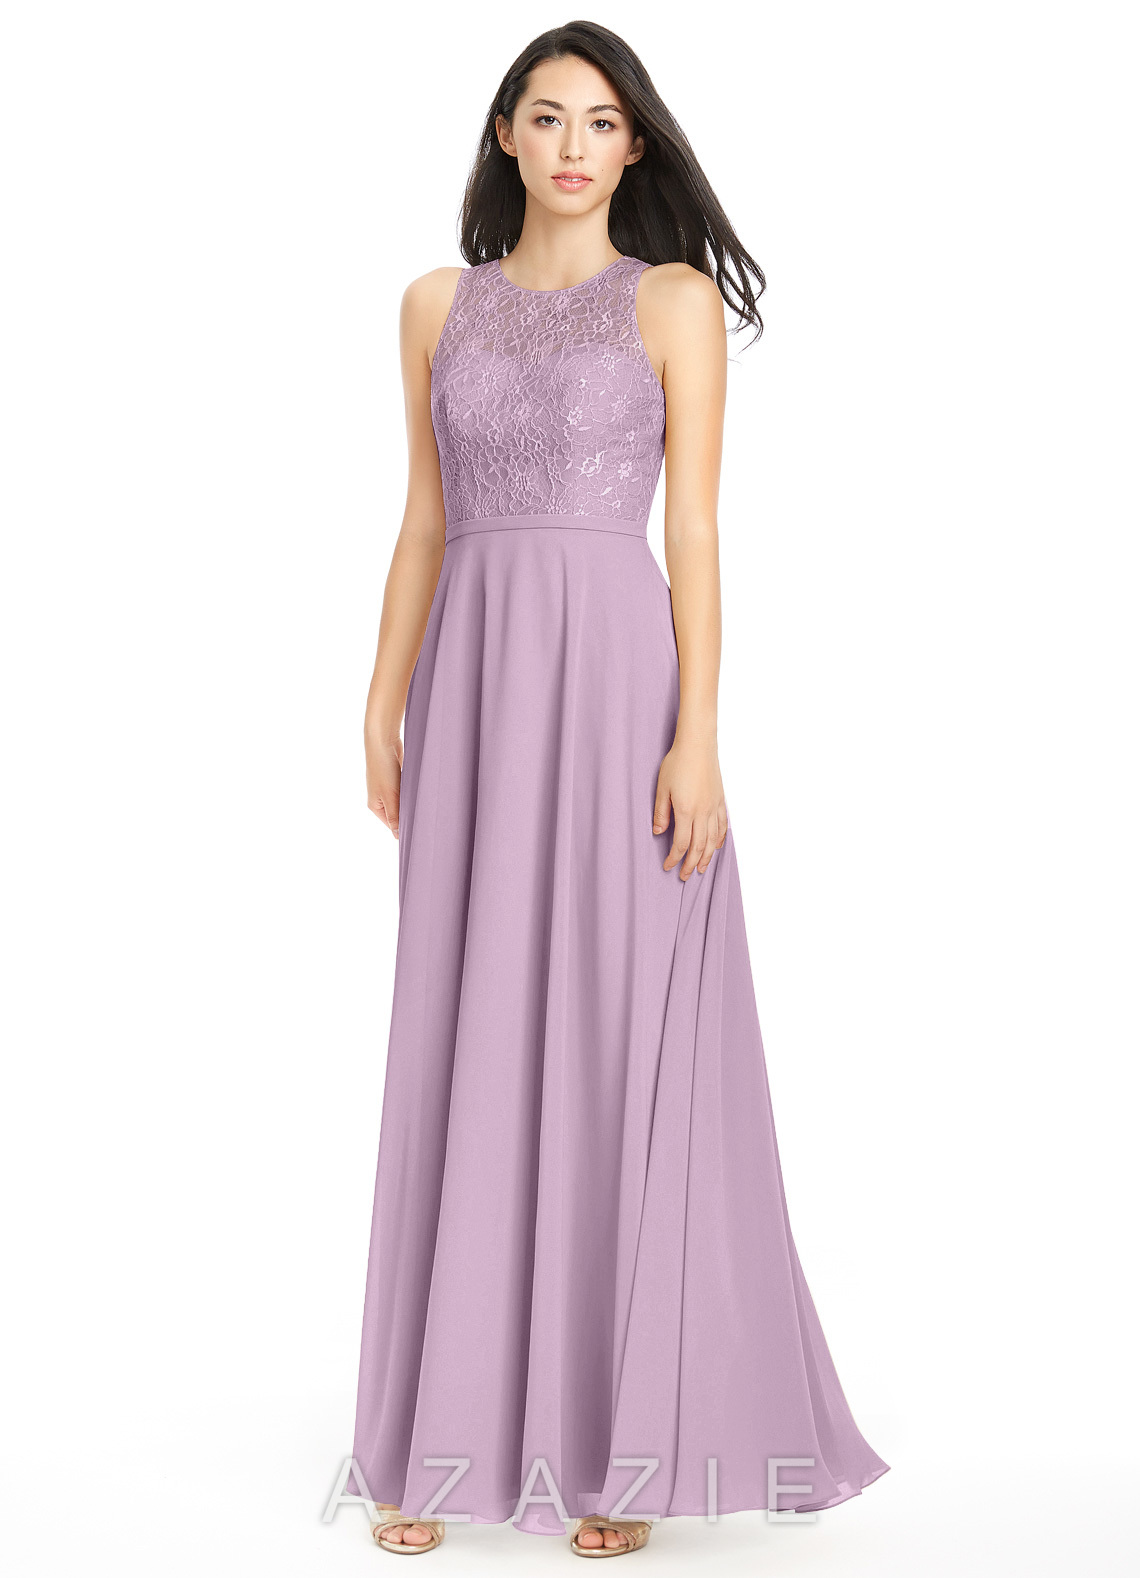 Azazie frederica bridesmaid dress azazie home bridesmaid dresses azazie frederica azazie frederica ombrellifo Choice Image